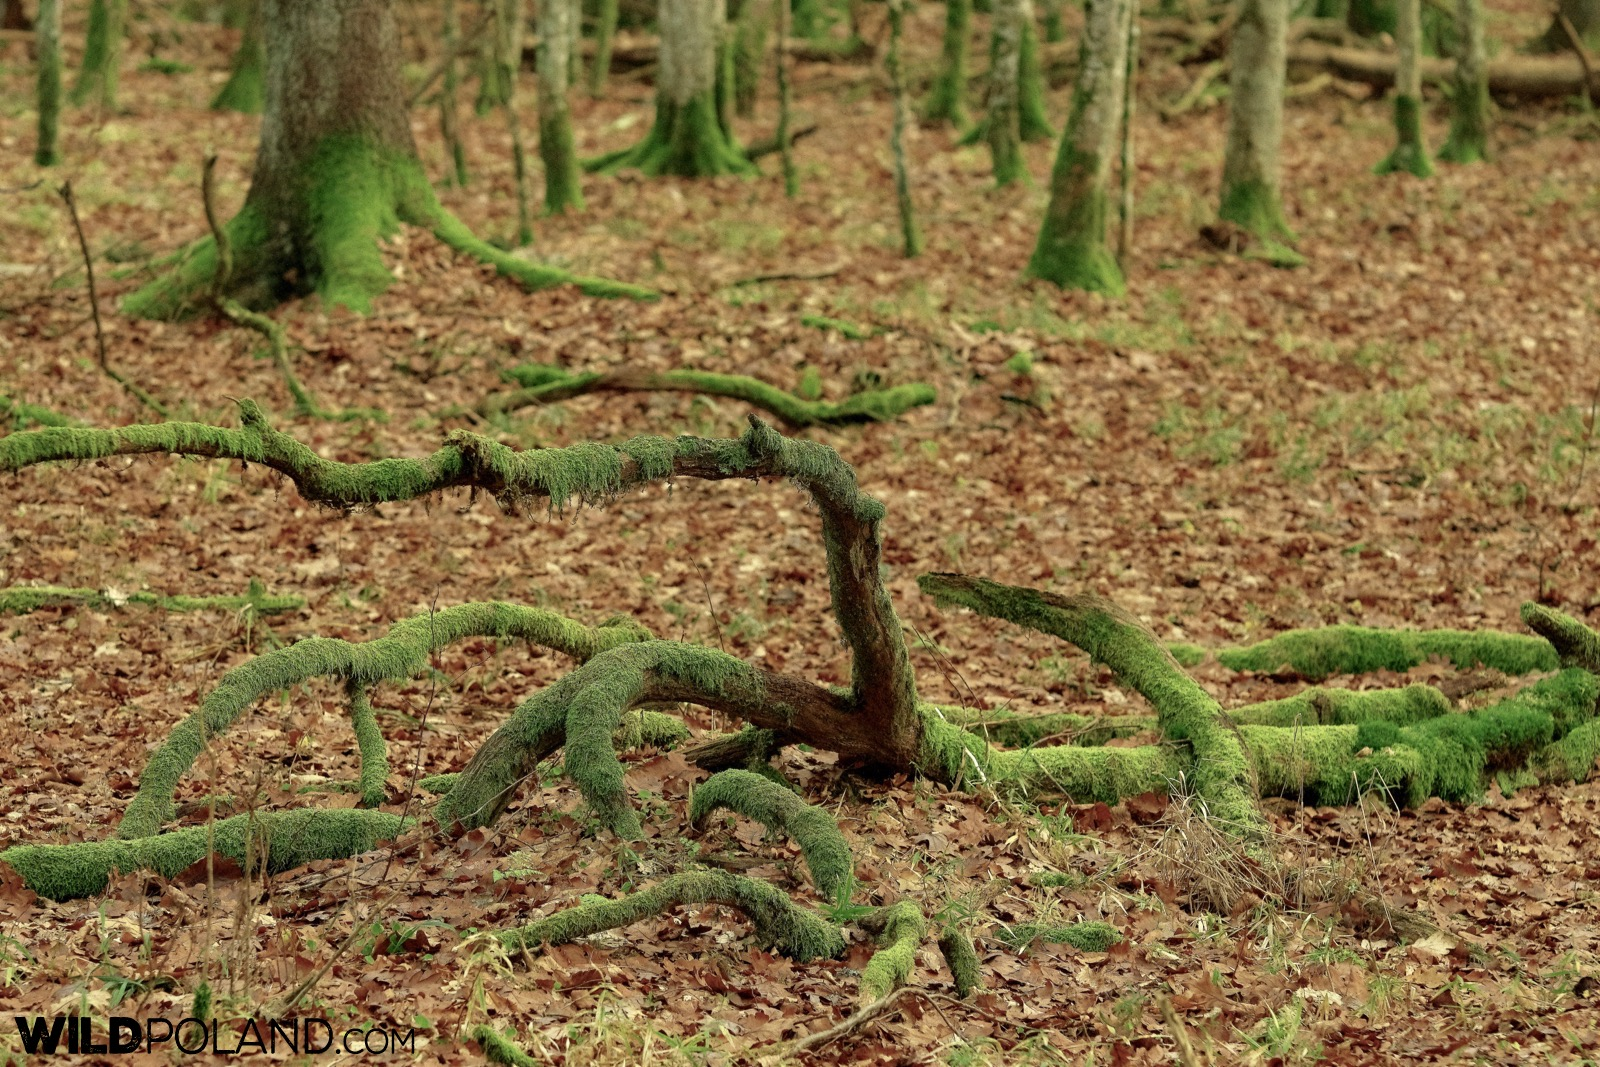 Inside the Strict Reserve in Białowieża National Park, photo by Andrzej Petryna